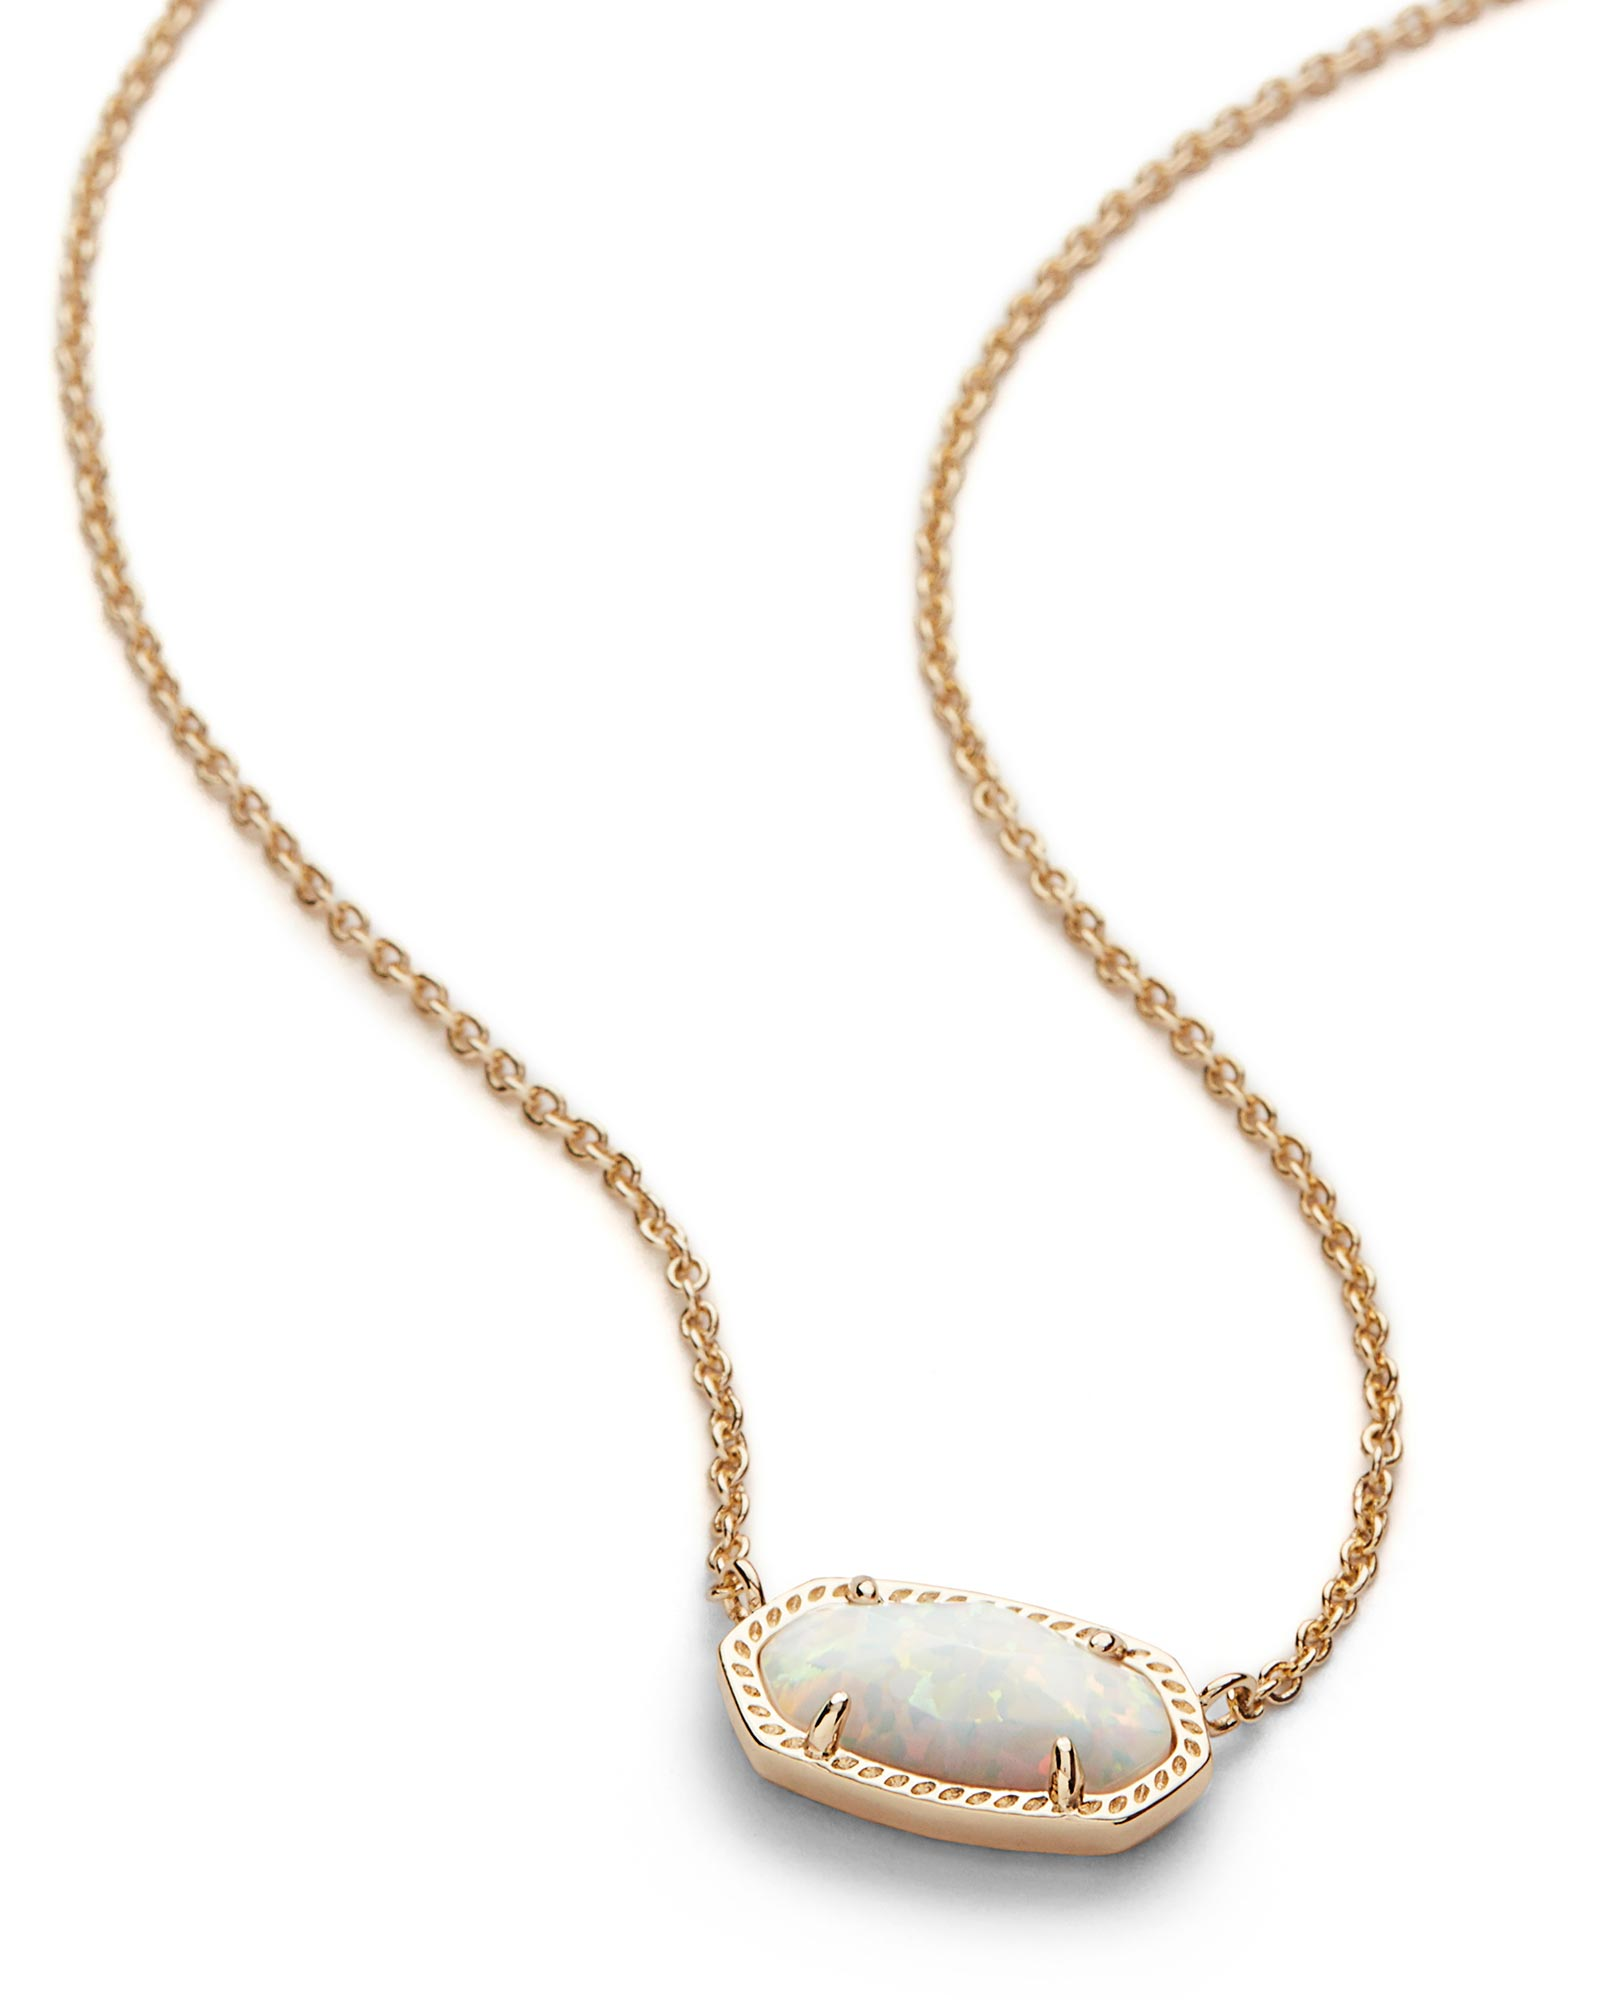 Elisa Gold Pendant Necklace in White Opal